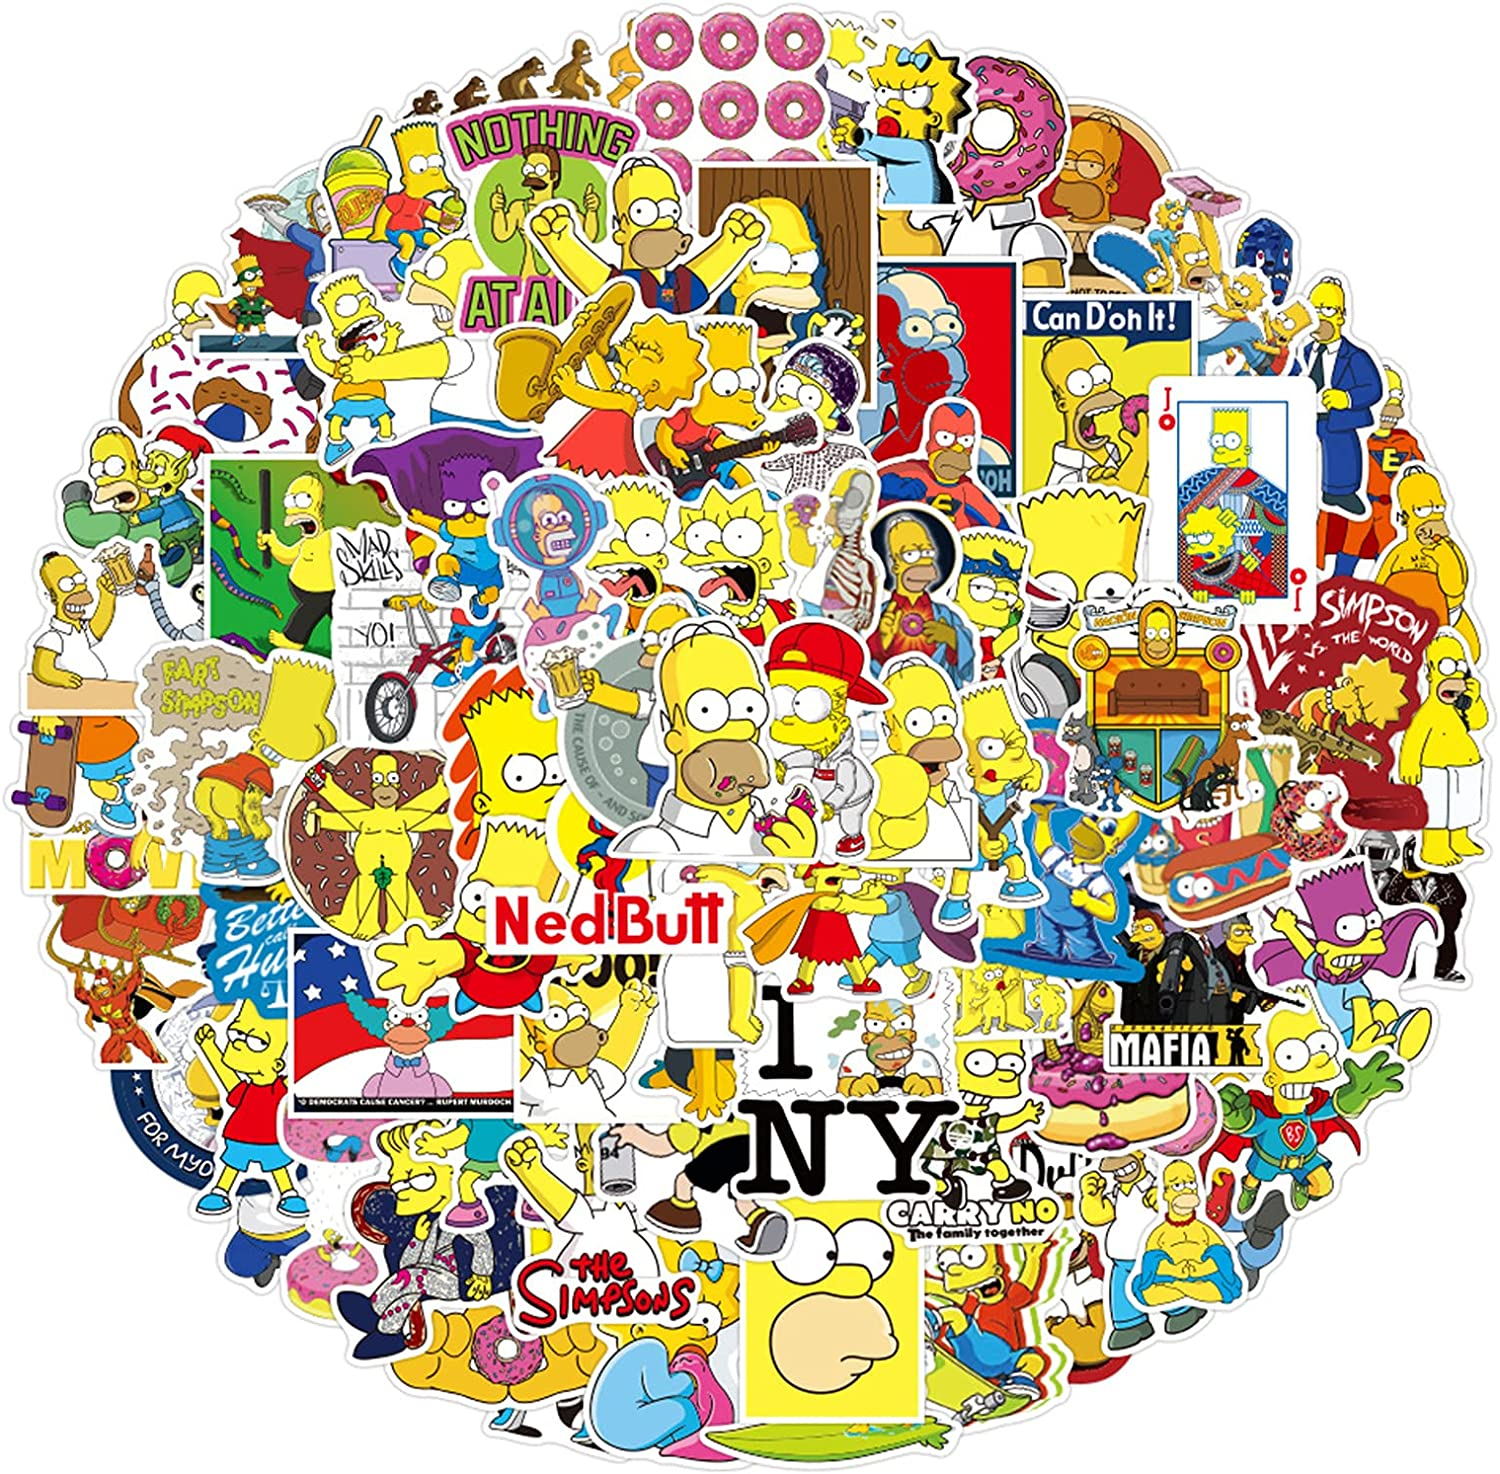 100PCS US Classic Animation The Simpsons Stickers for Laptop Water Bottle Luggage Snowboard Bicycle Skateboard Decal for Kids Teens Adult Waterproof Aesthetic Stickers (The Simpsons)